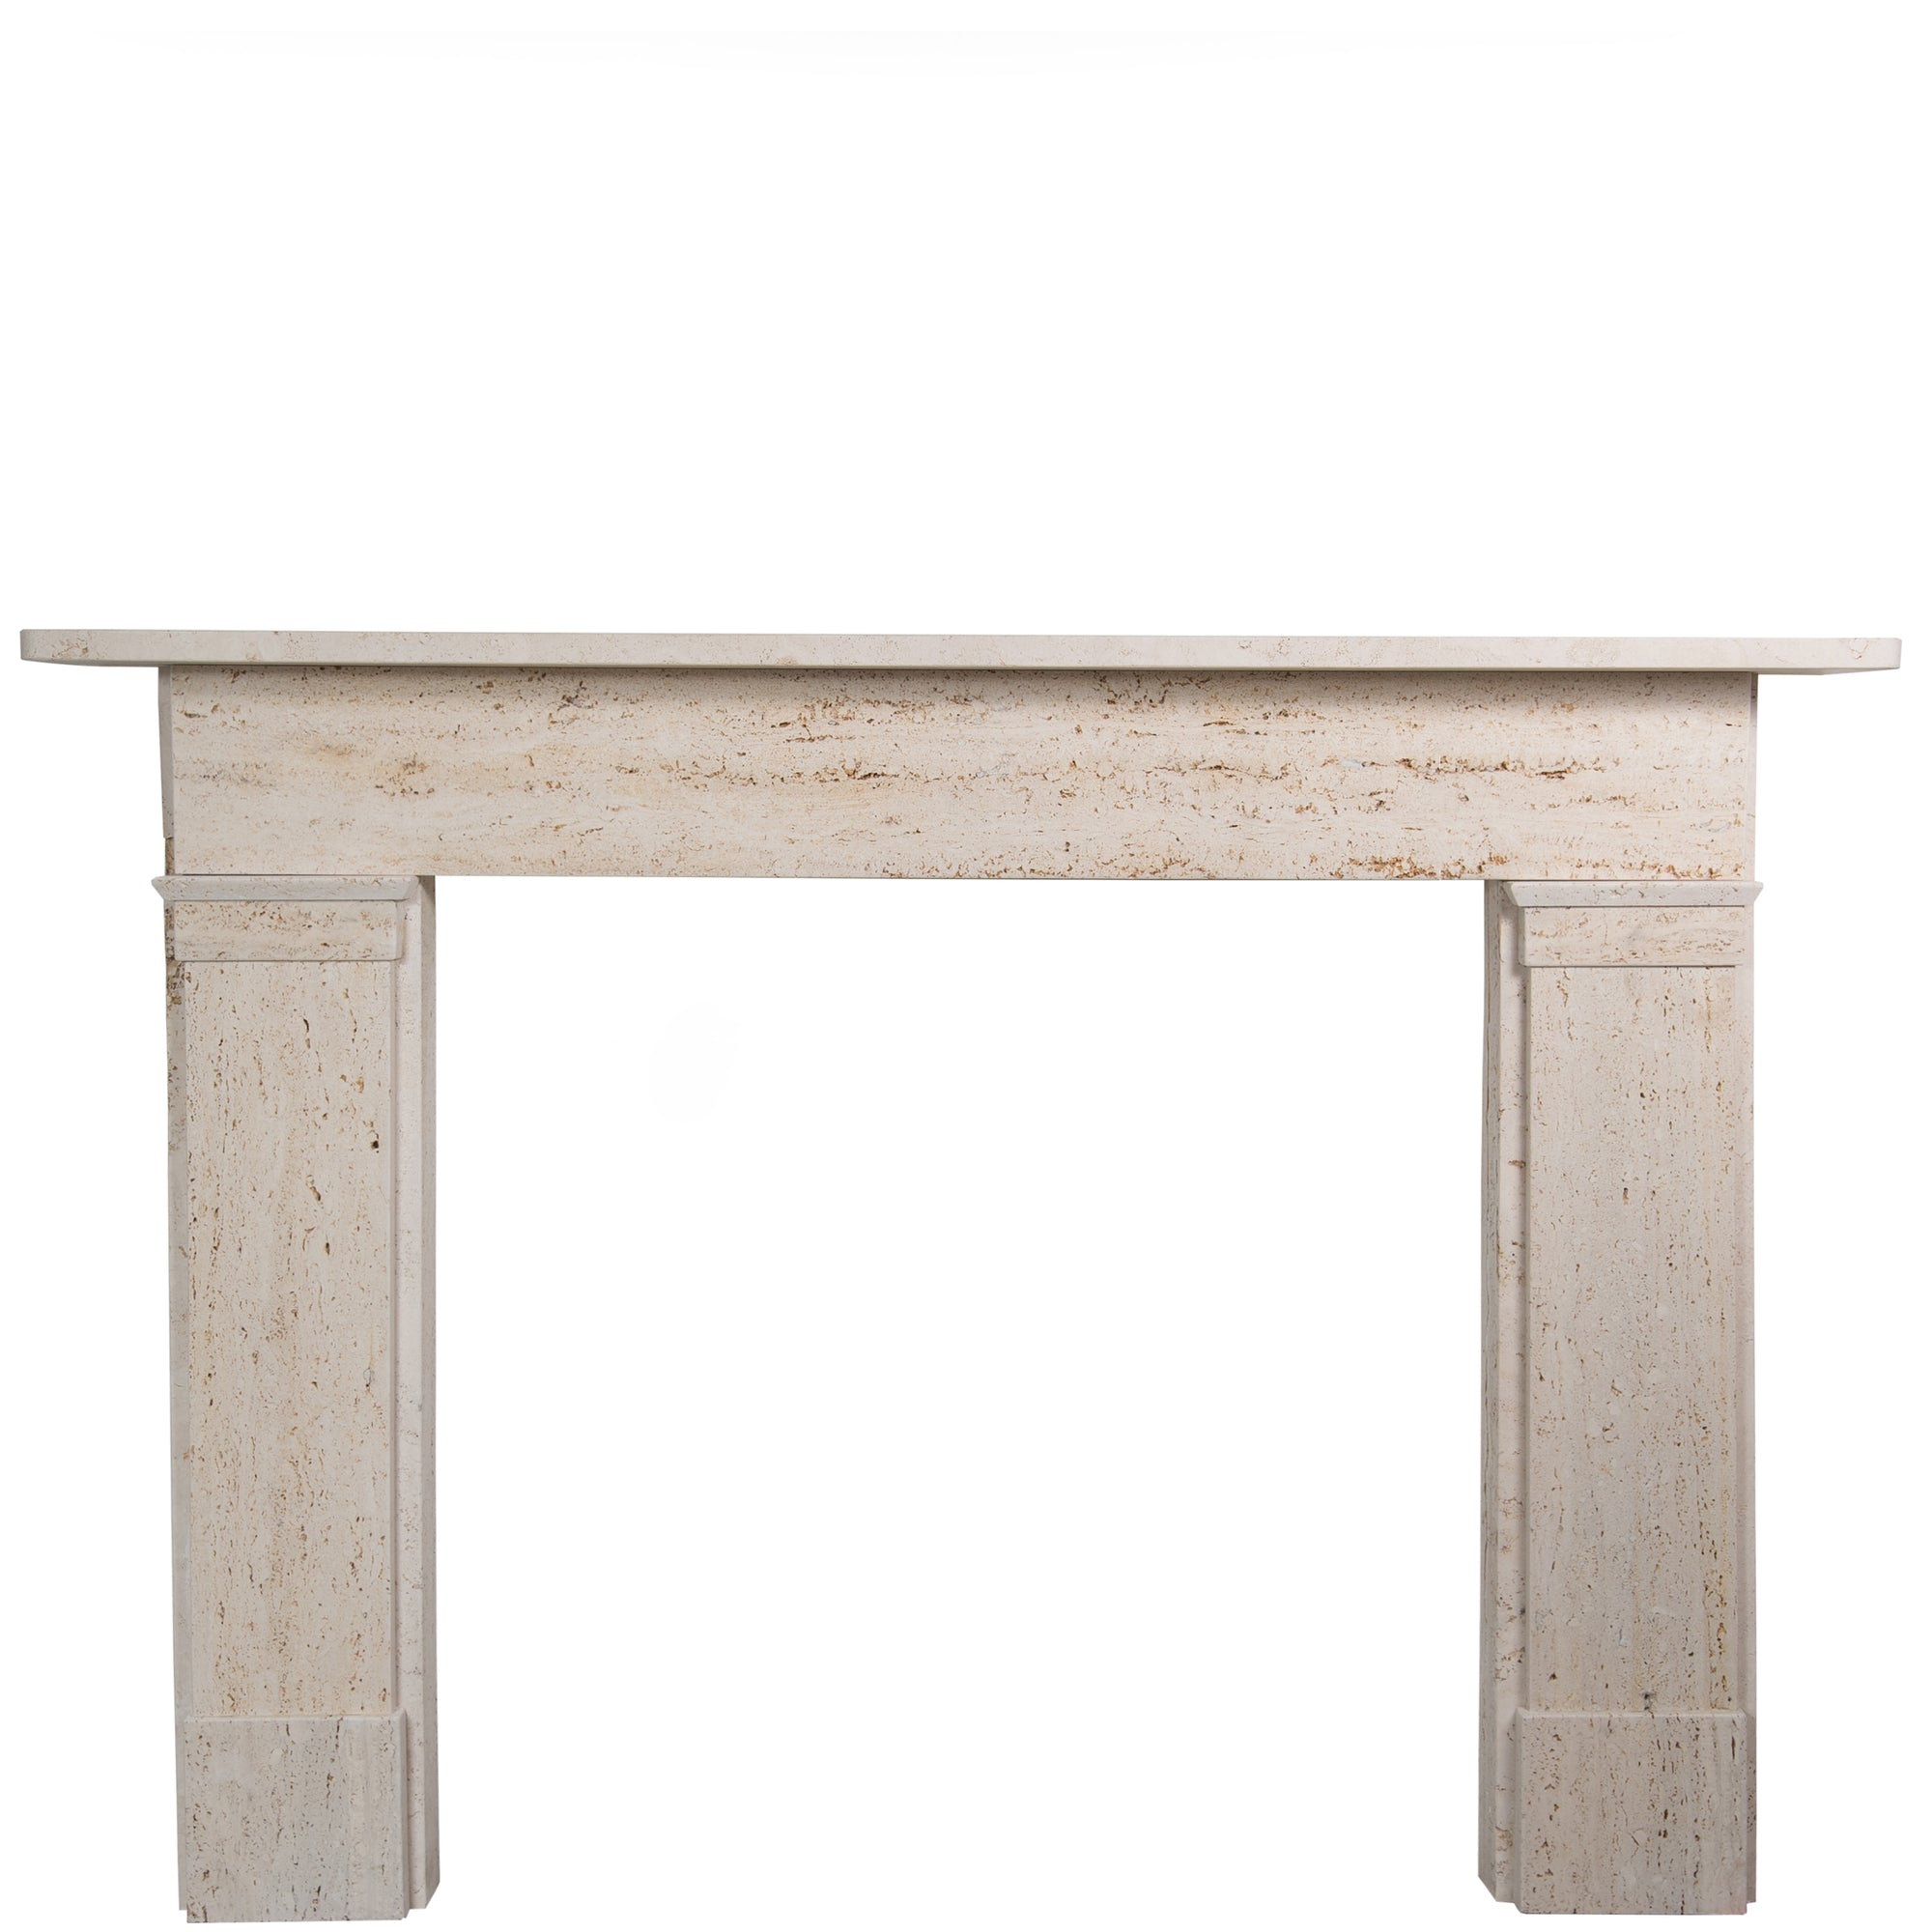 Georgian/Victorian Style Travertine Marble Fireplace Surround - The Architectural Forum